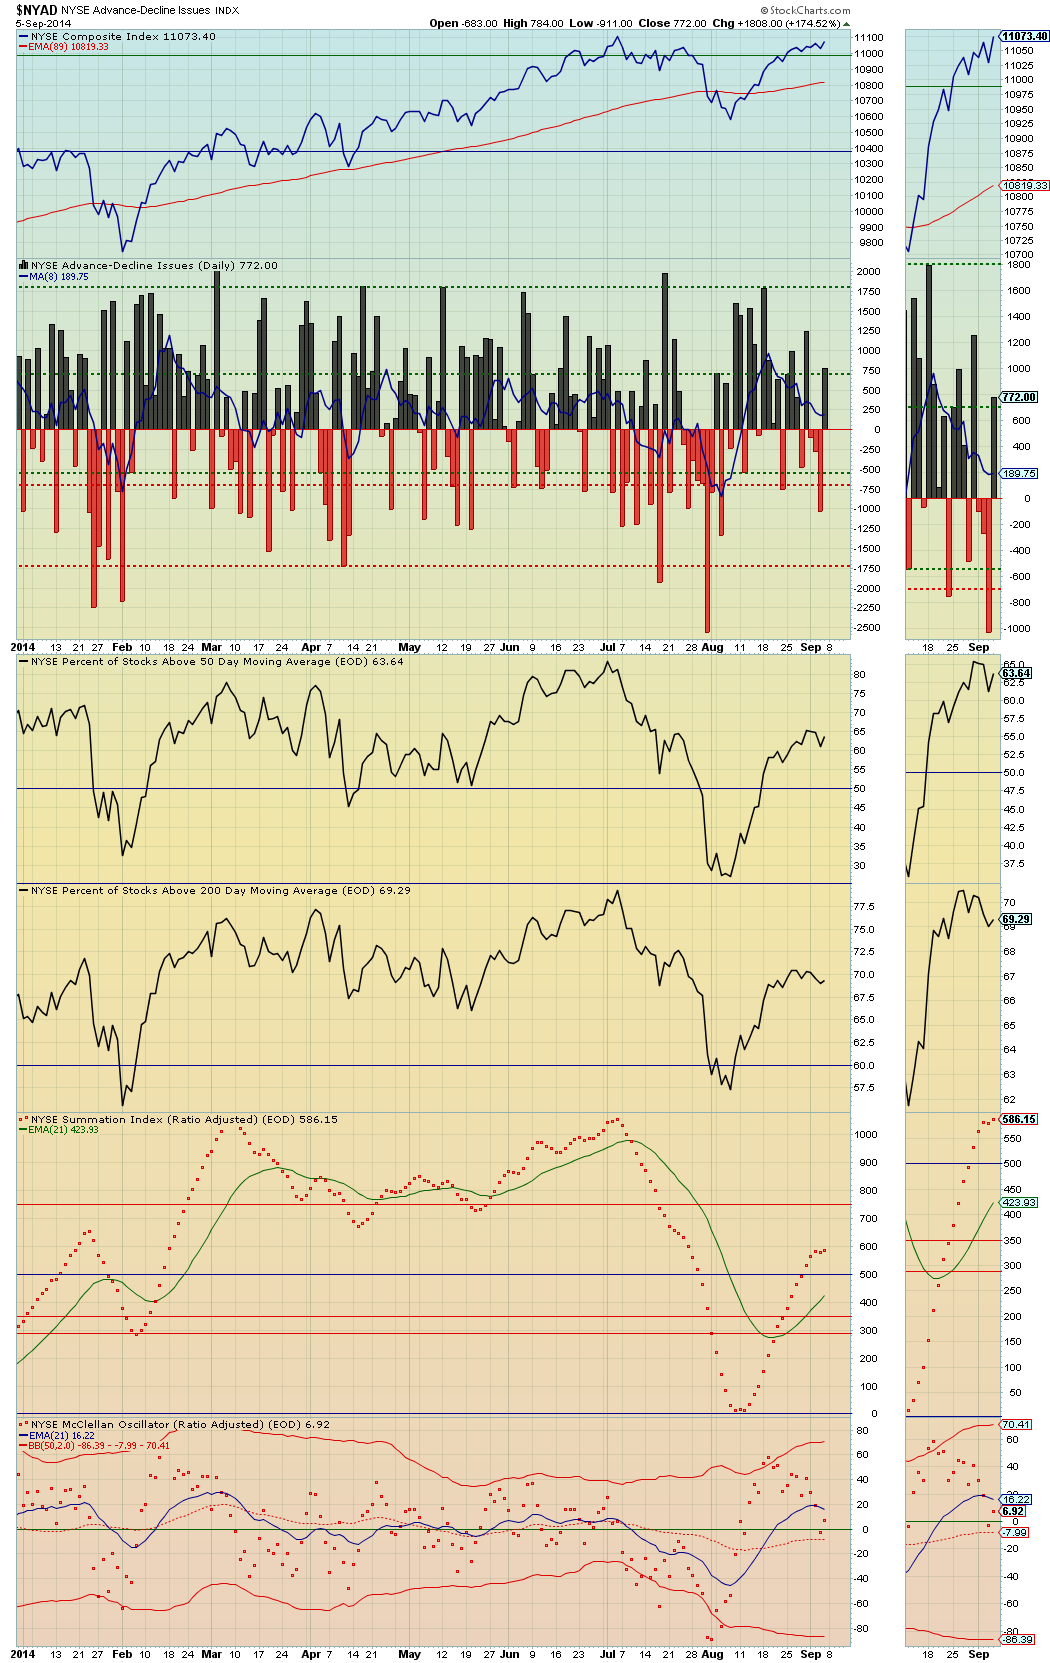 NYAD daily data smoothed with the 8-day sma - September 5, 2014.png